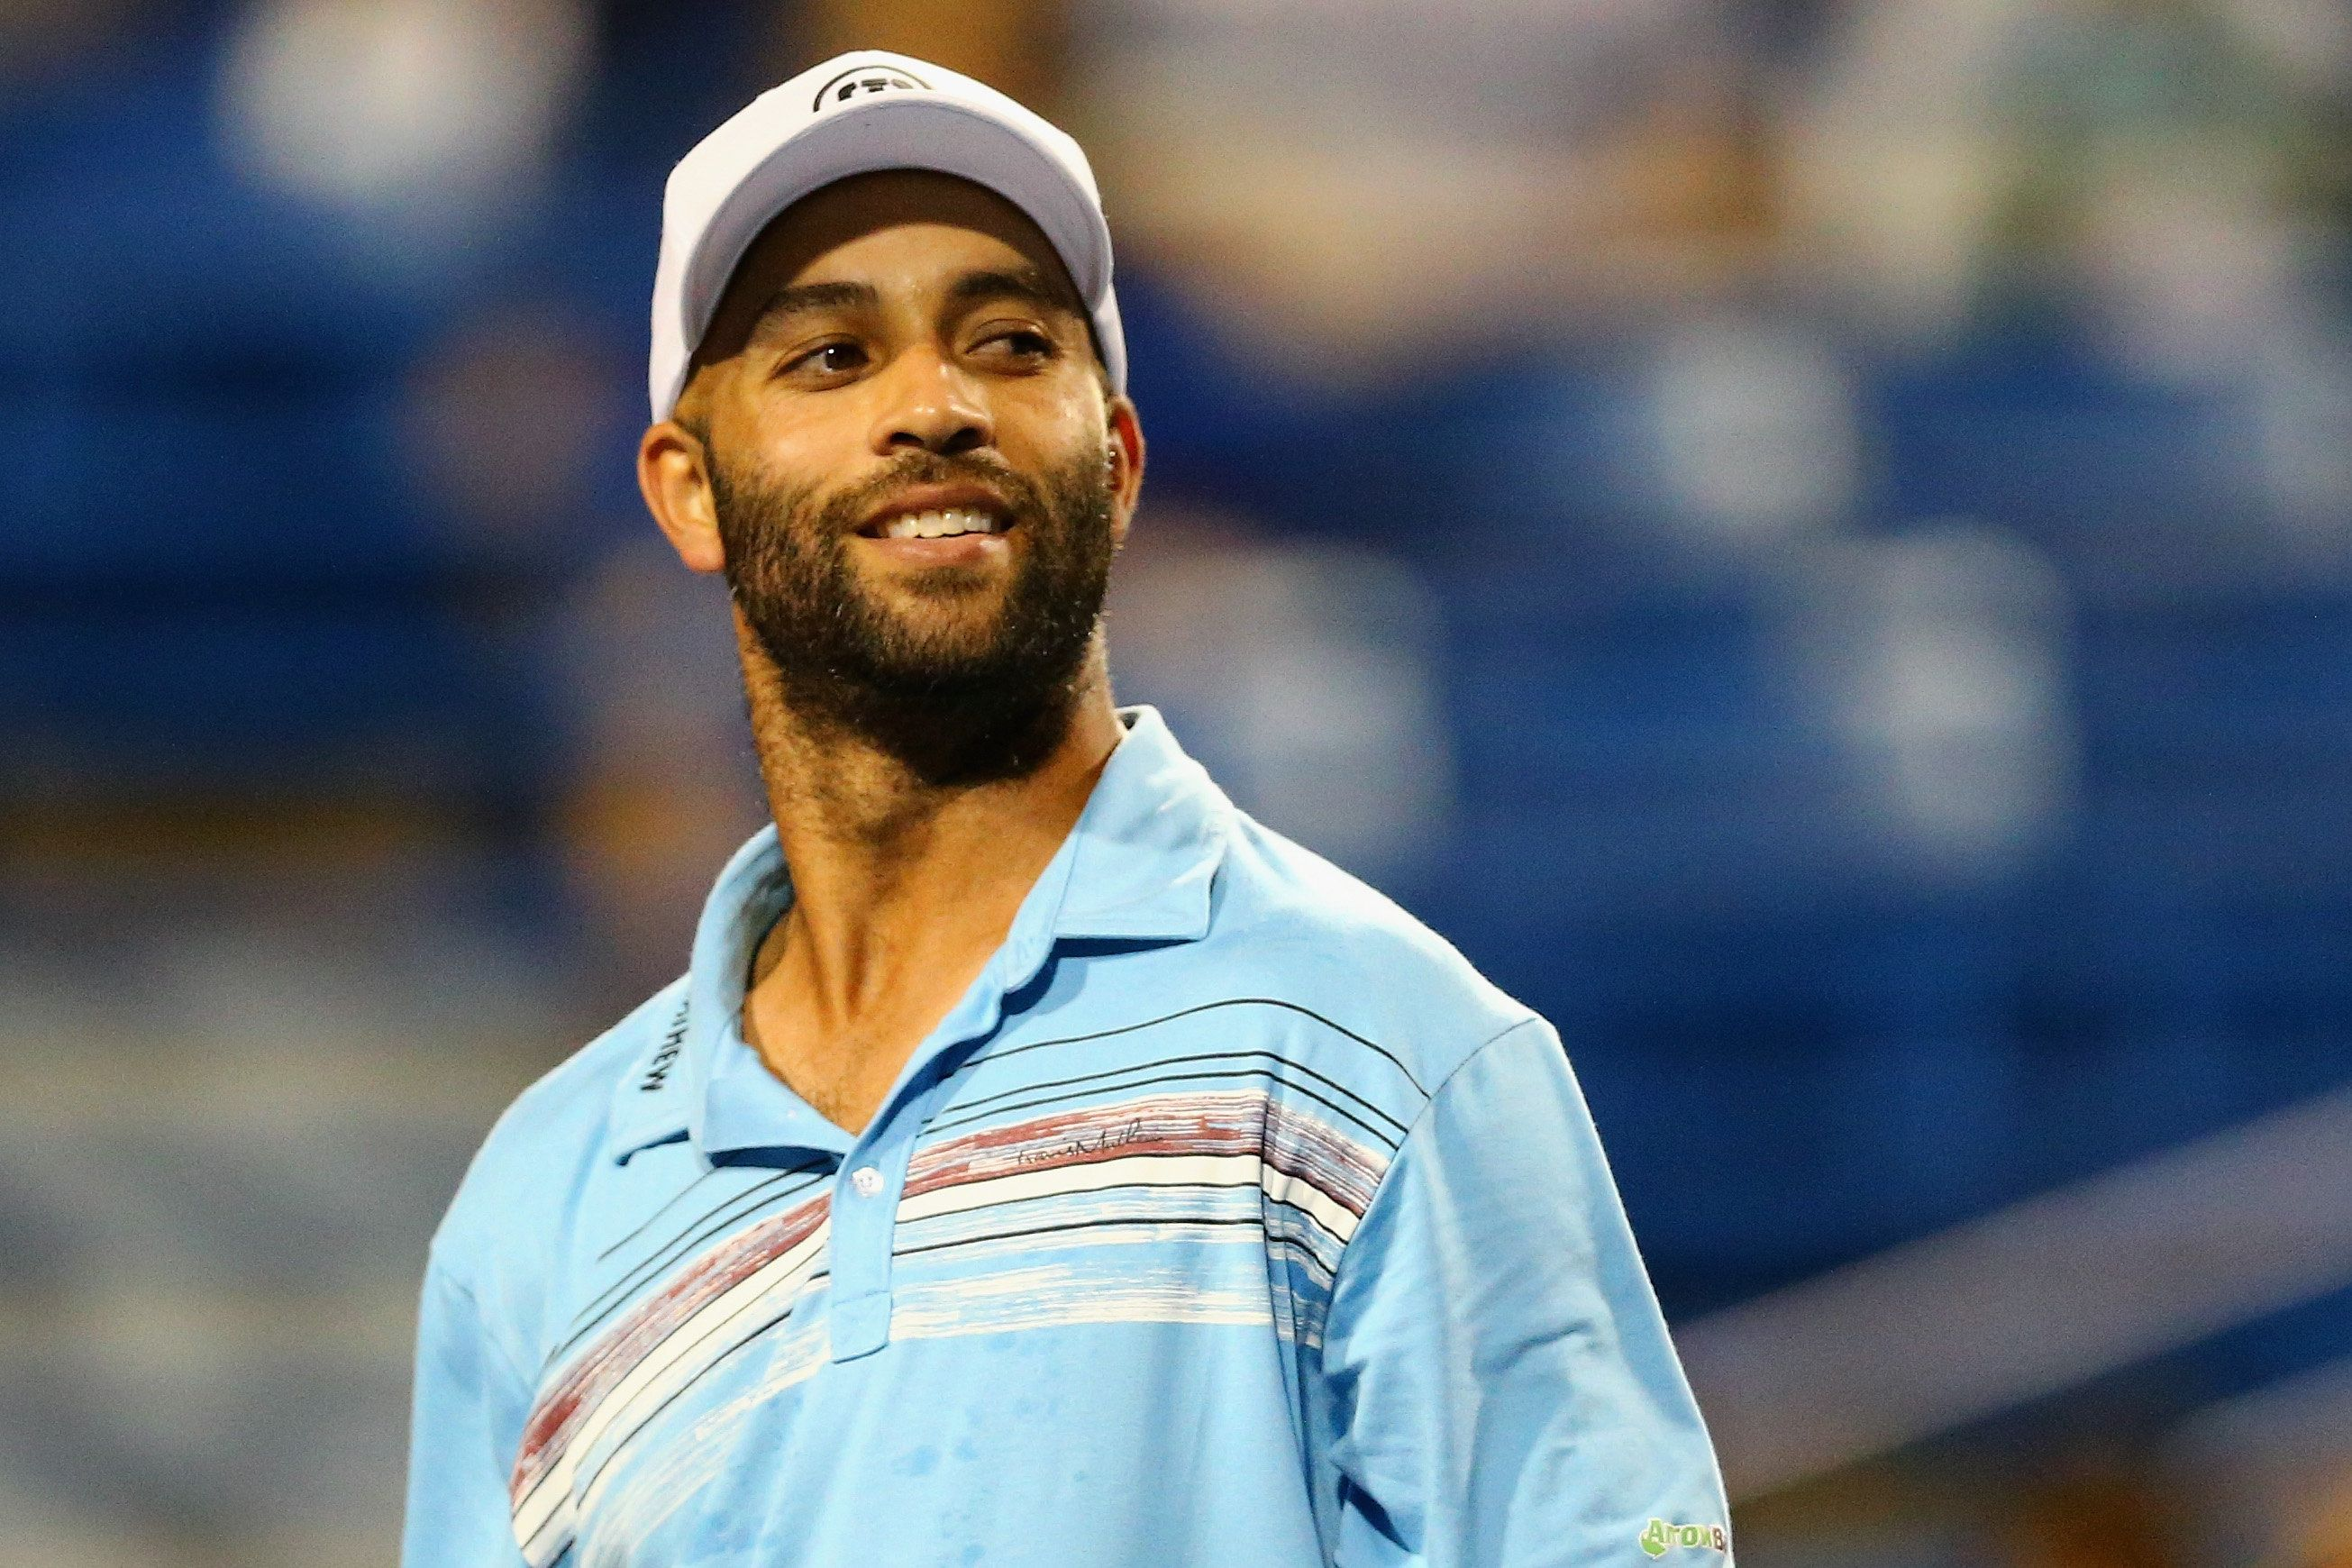 NEW HAVEN, CT - AUGUST 27:  James Blake looks on during his match against Andy Roddick as part of the Men's Legends presented by PowerShares Series on Day 4 of the Connecticut Open at Connecticut Tennis Center at Yale on August 27, 2015 in New Haven, Connecticut.  (Photo by Maddie Meyer/Getty Images)